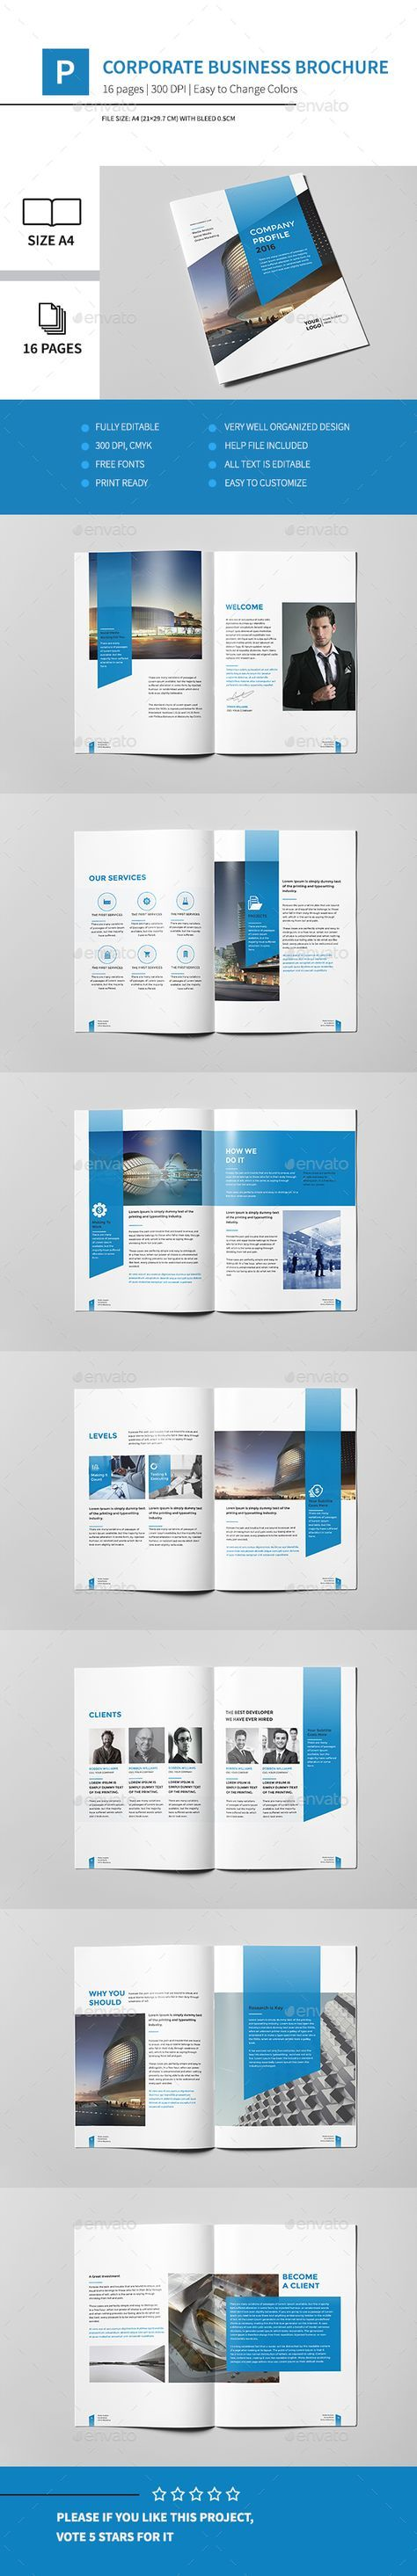 corporate business brochure 16 pages a4 corporate brochures book